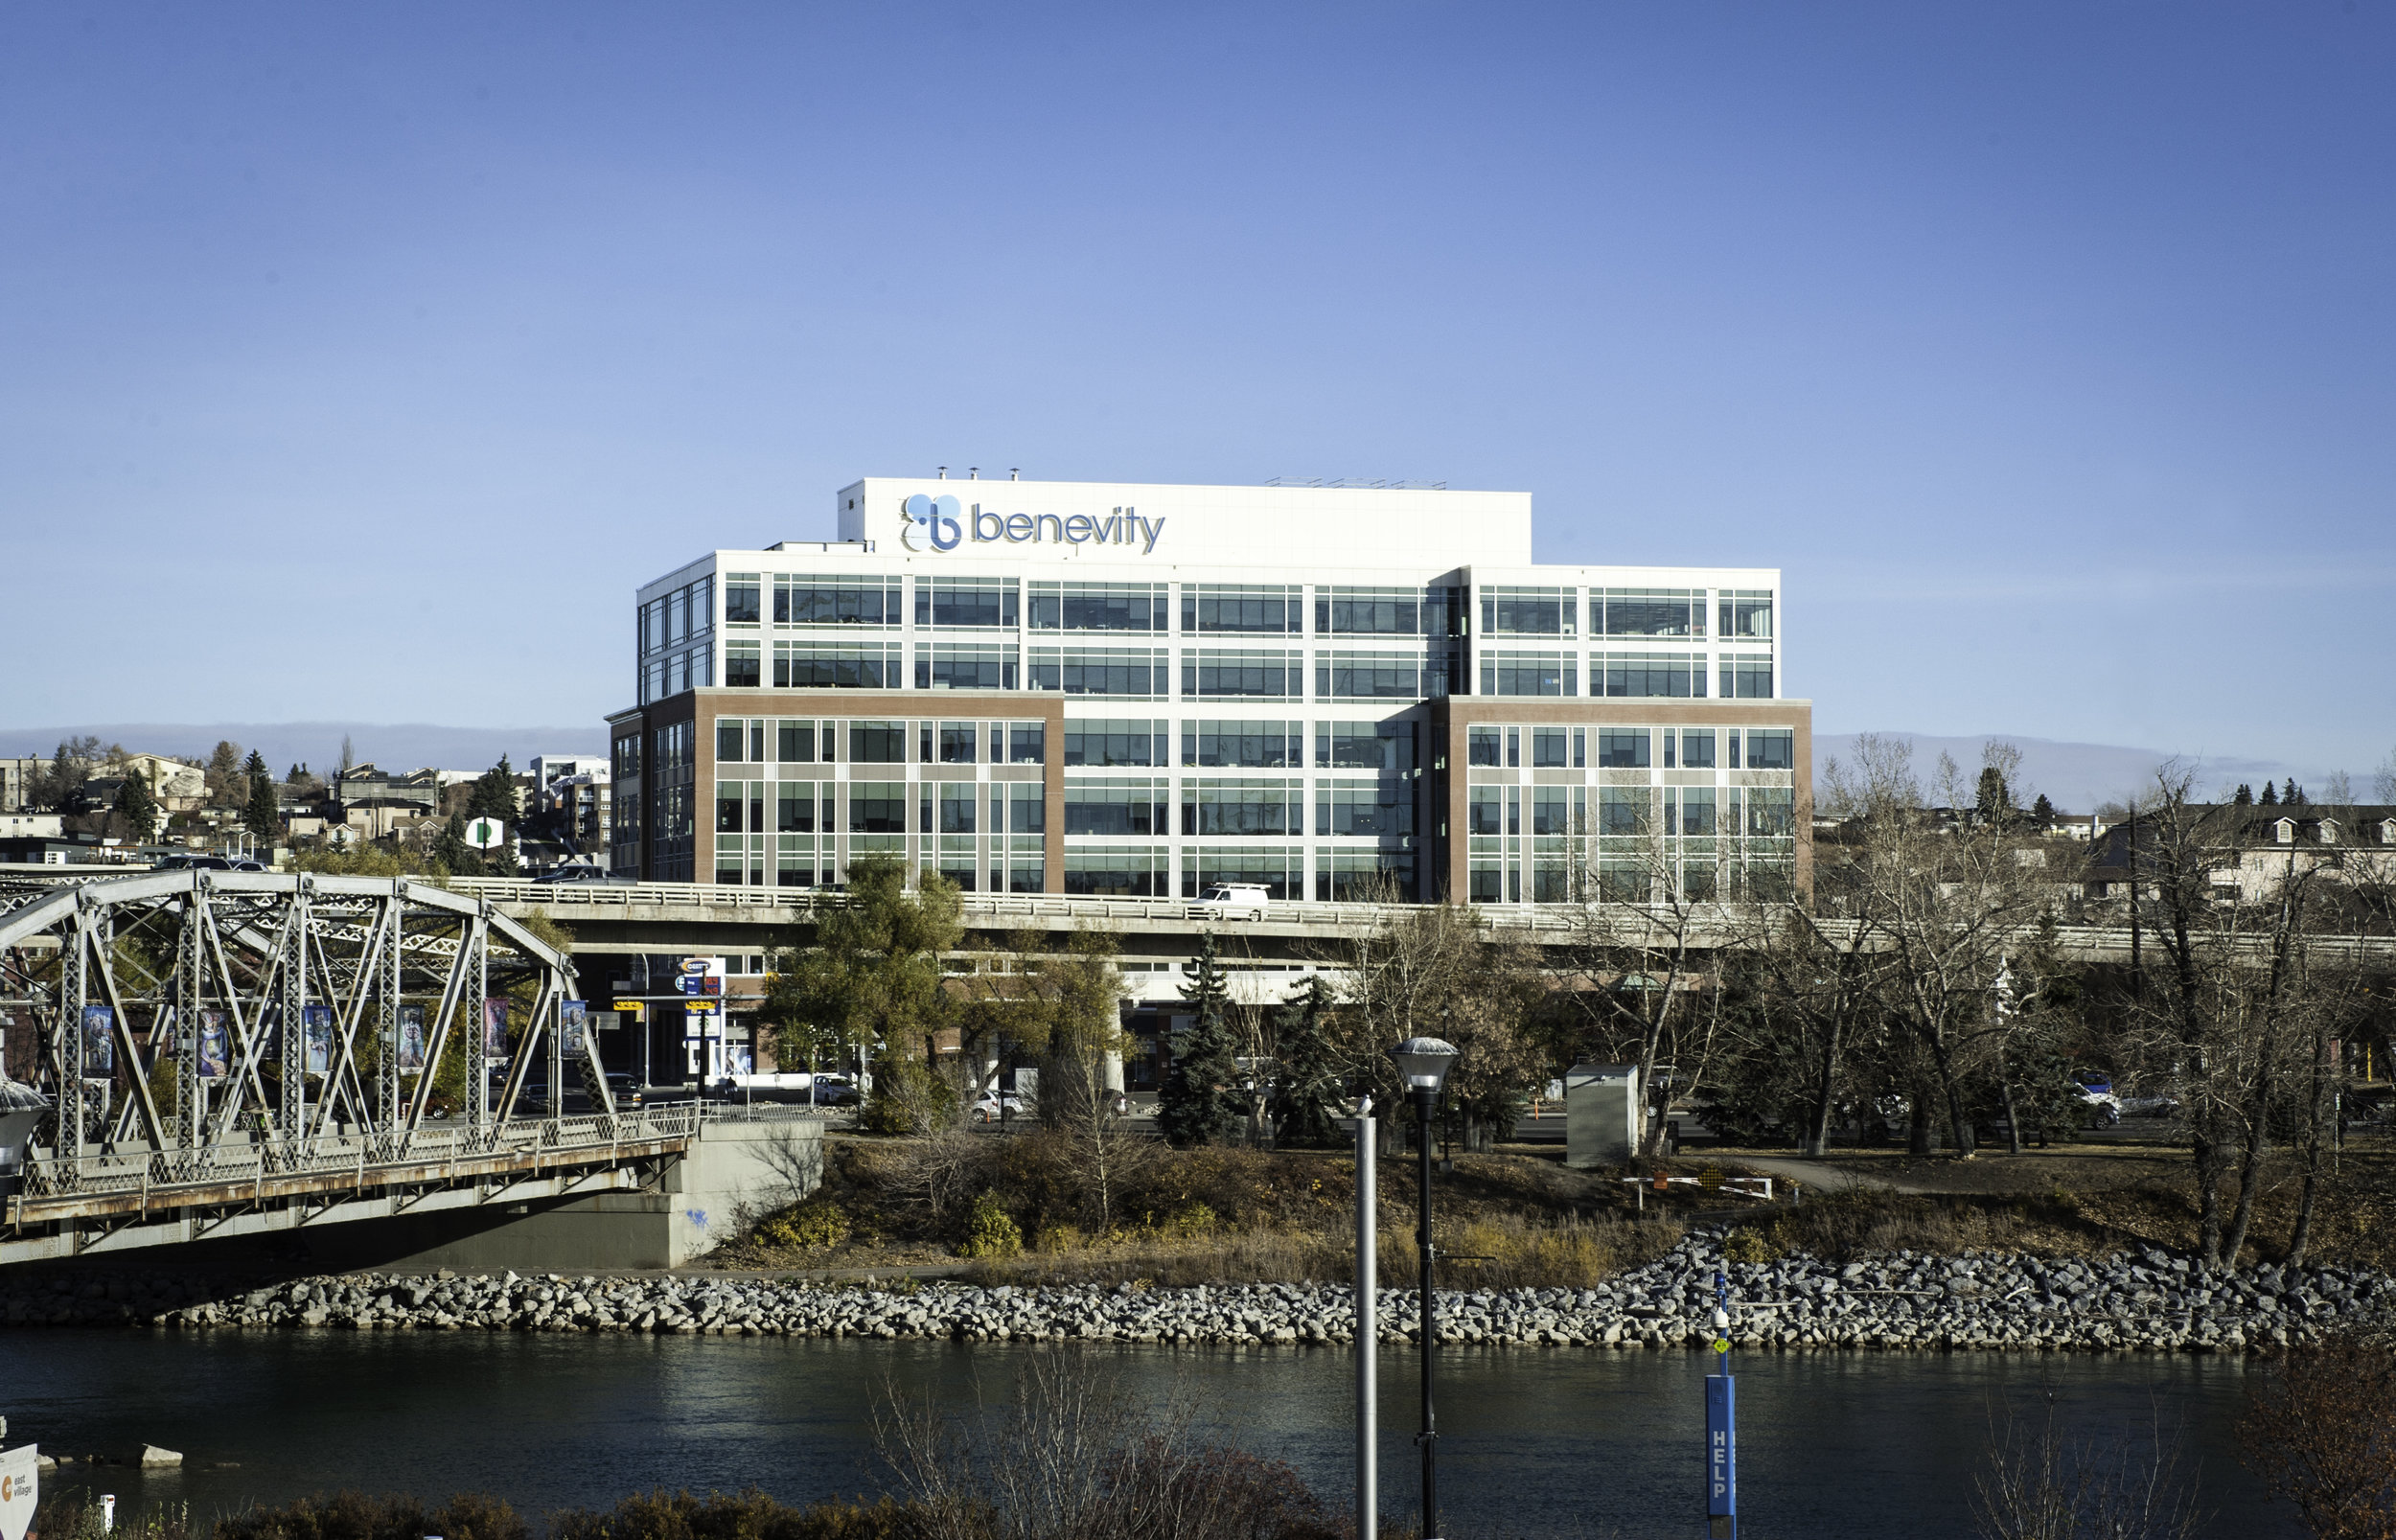 Copy of Benevity HQ, located in Calgary, AB